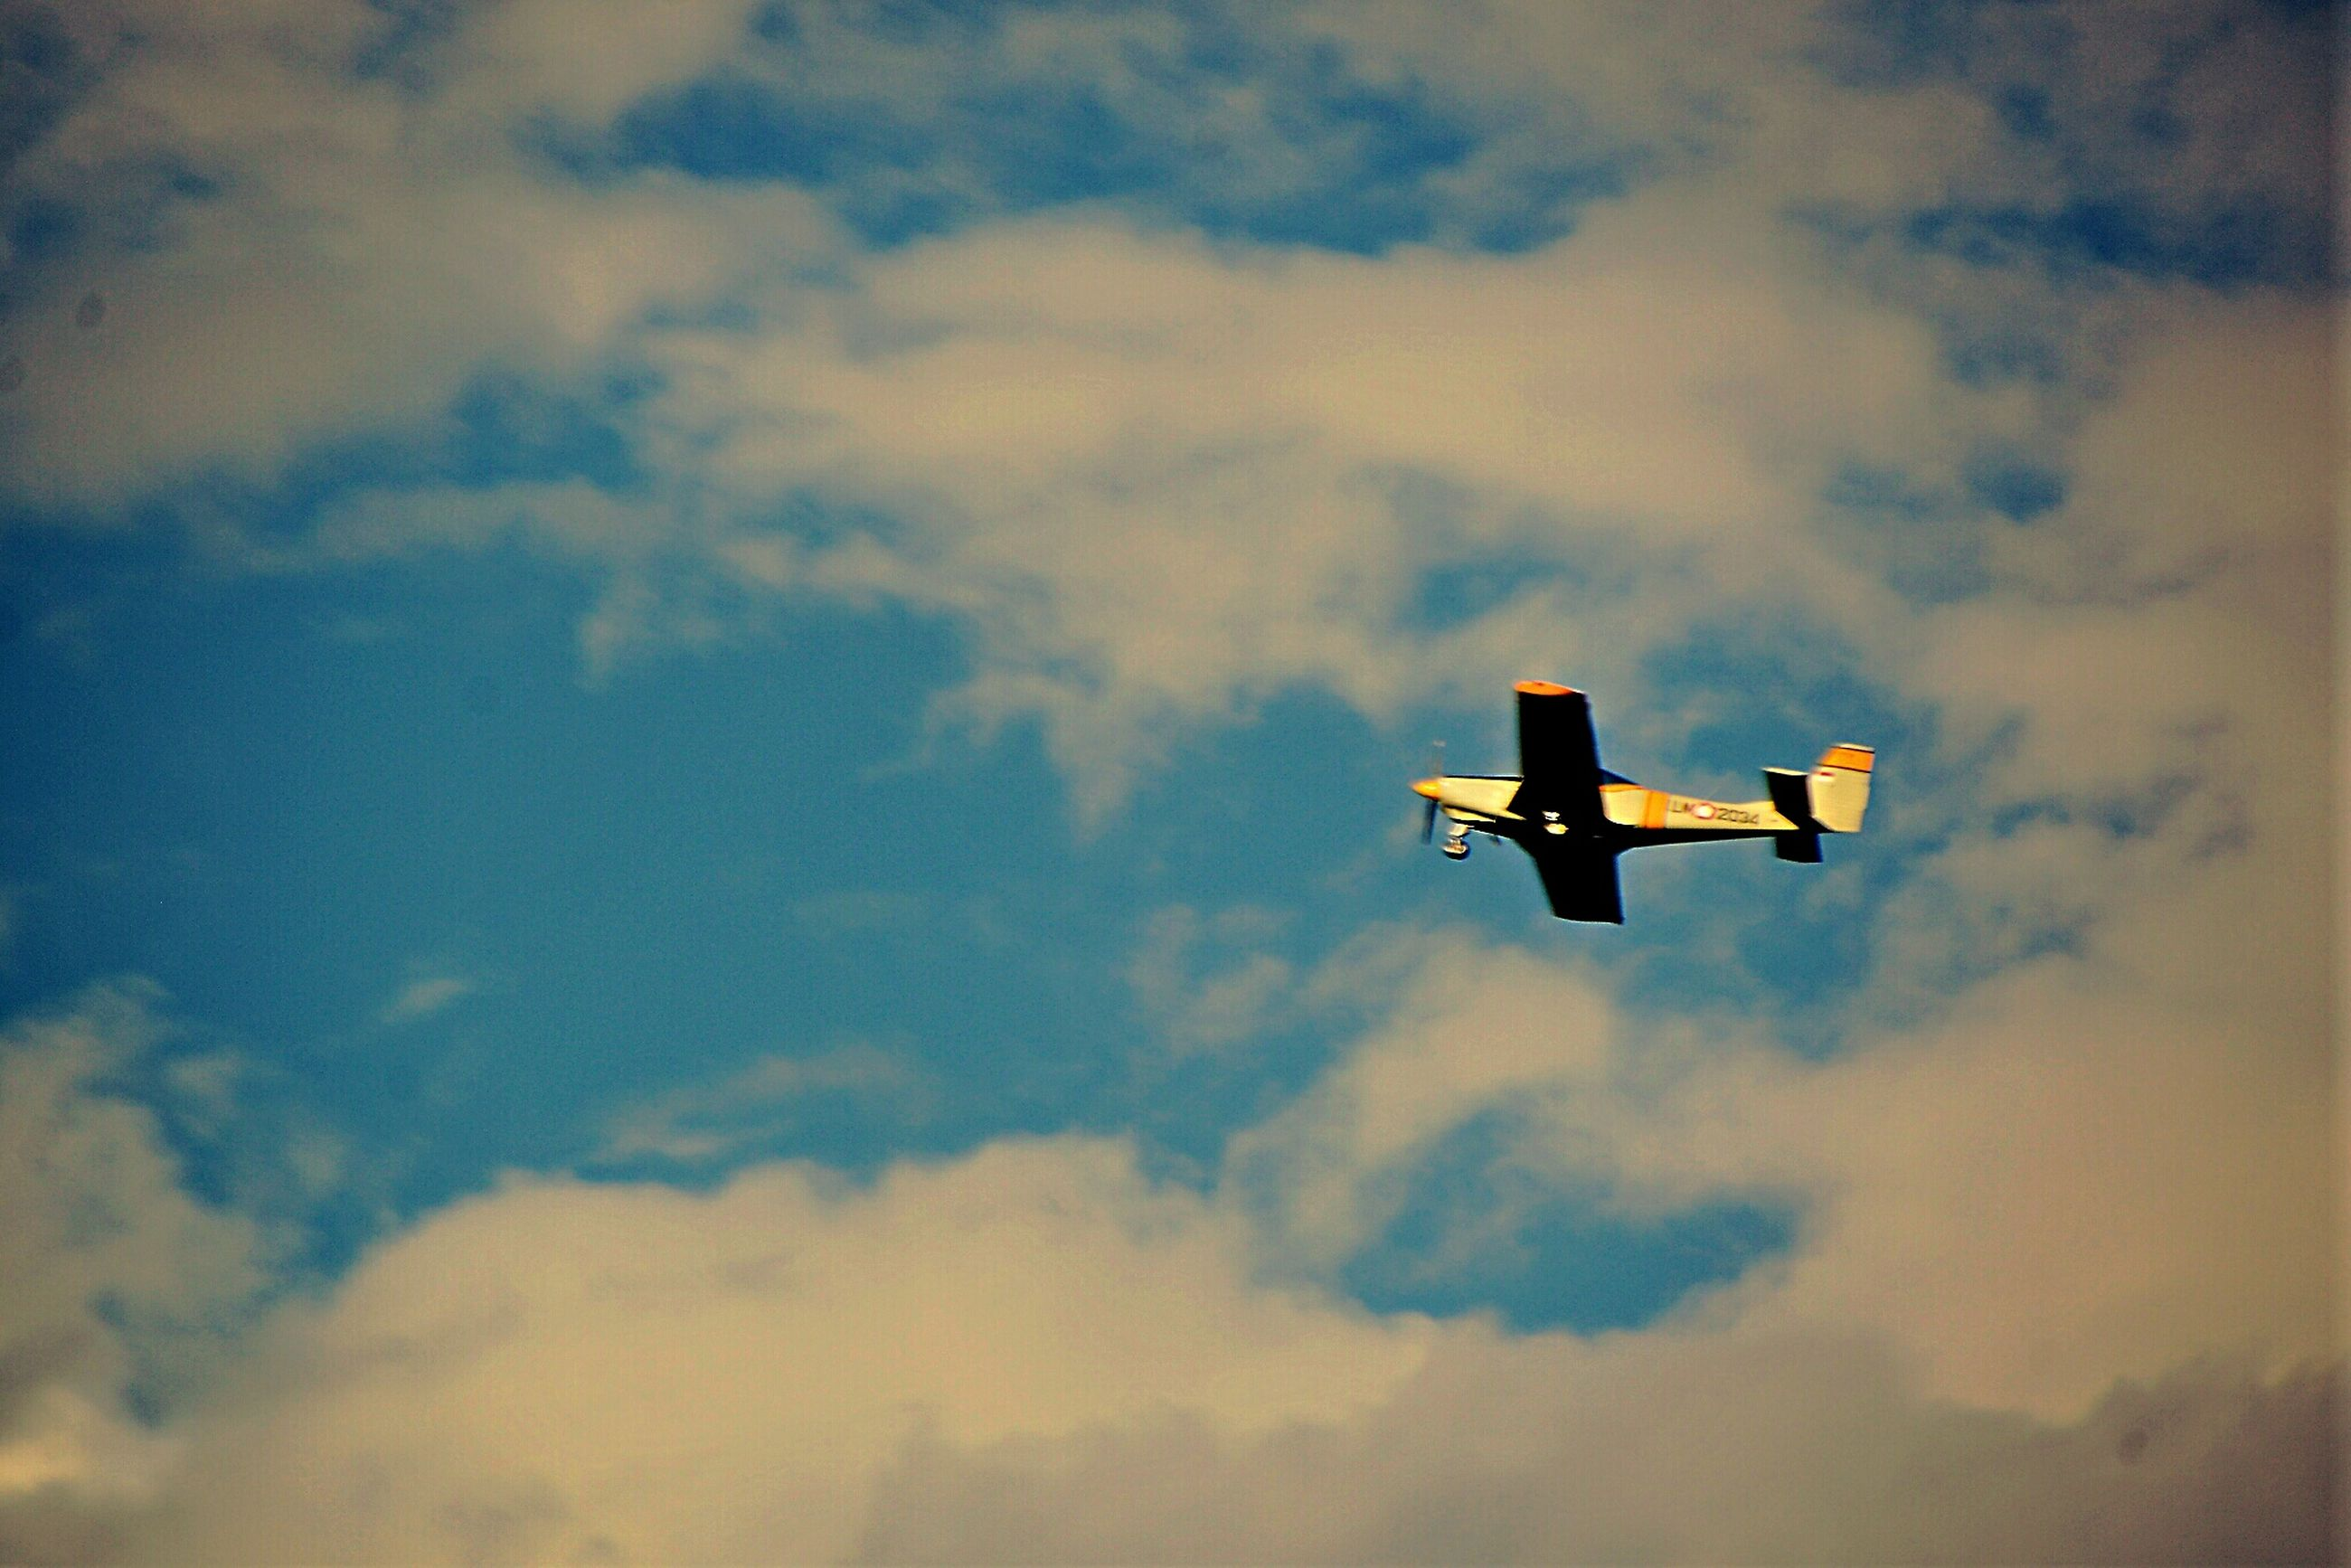 low angle view, sky, flying, cloud - sky, airplane, silhouette, mid-air, air vehicle, cloudy, lighting equipment, cloud, street light, dusk, sunset, outdoors, no people, nature, transportation, bird, weather